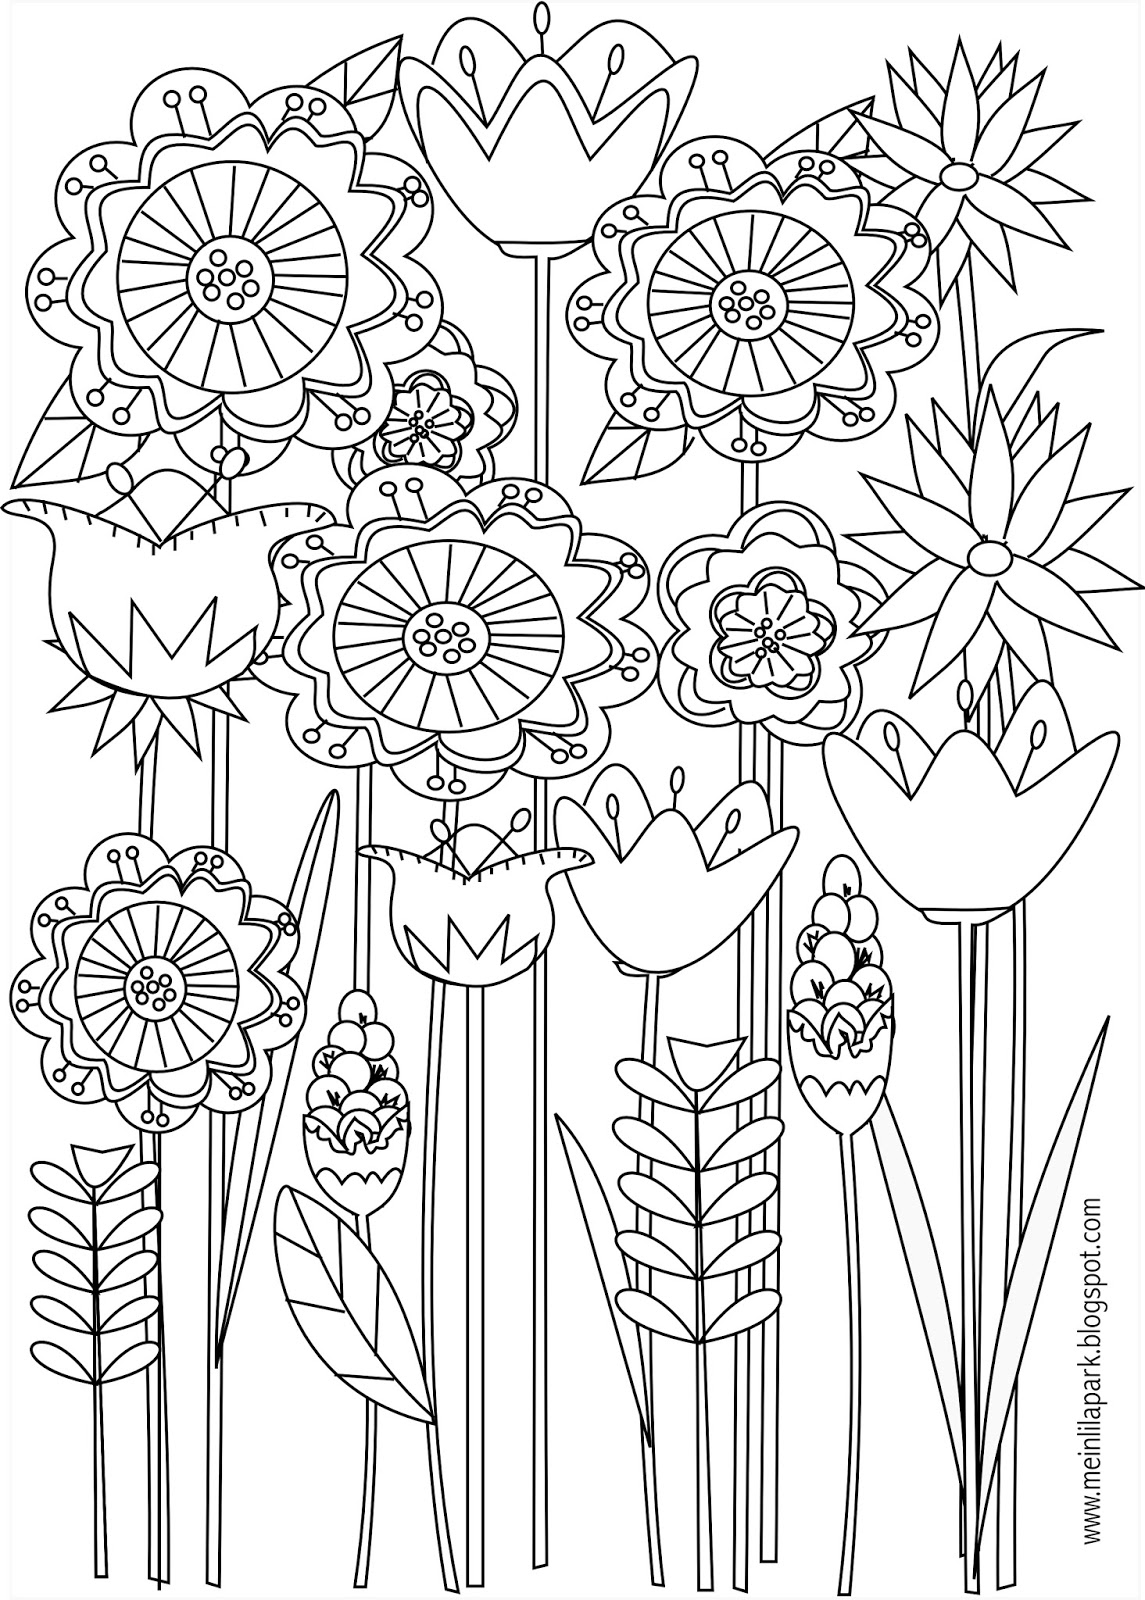 coloring flowers for adults coloring flowers for adults adults coloring for flowers